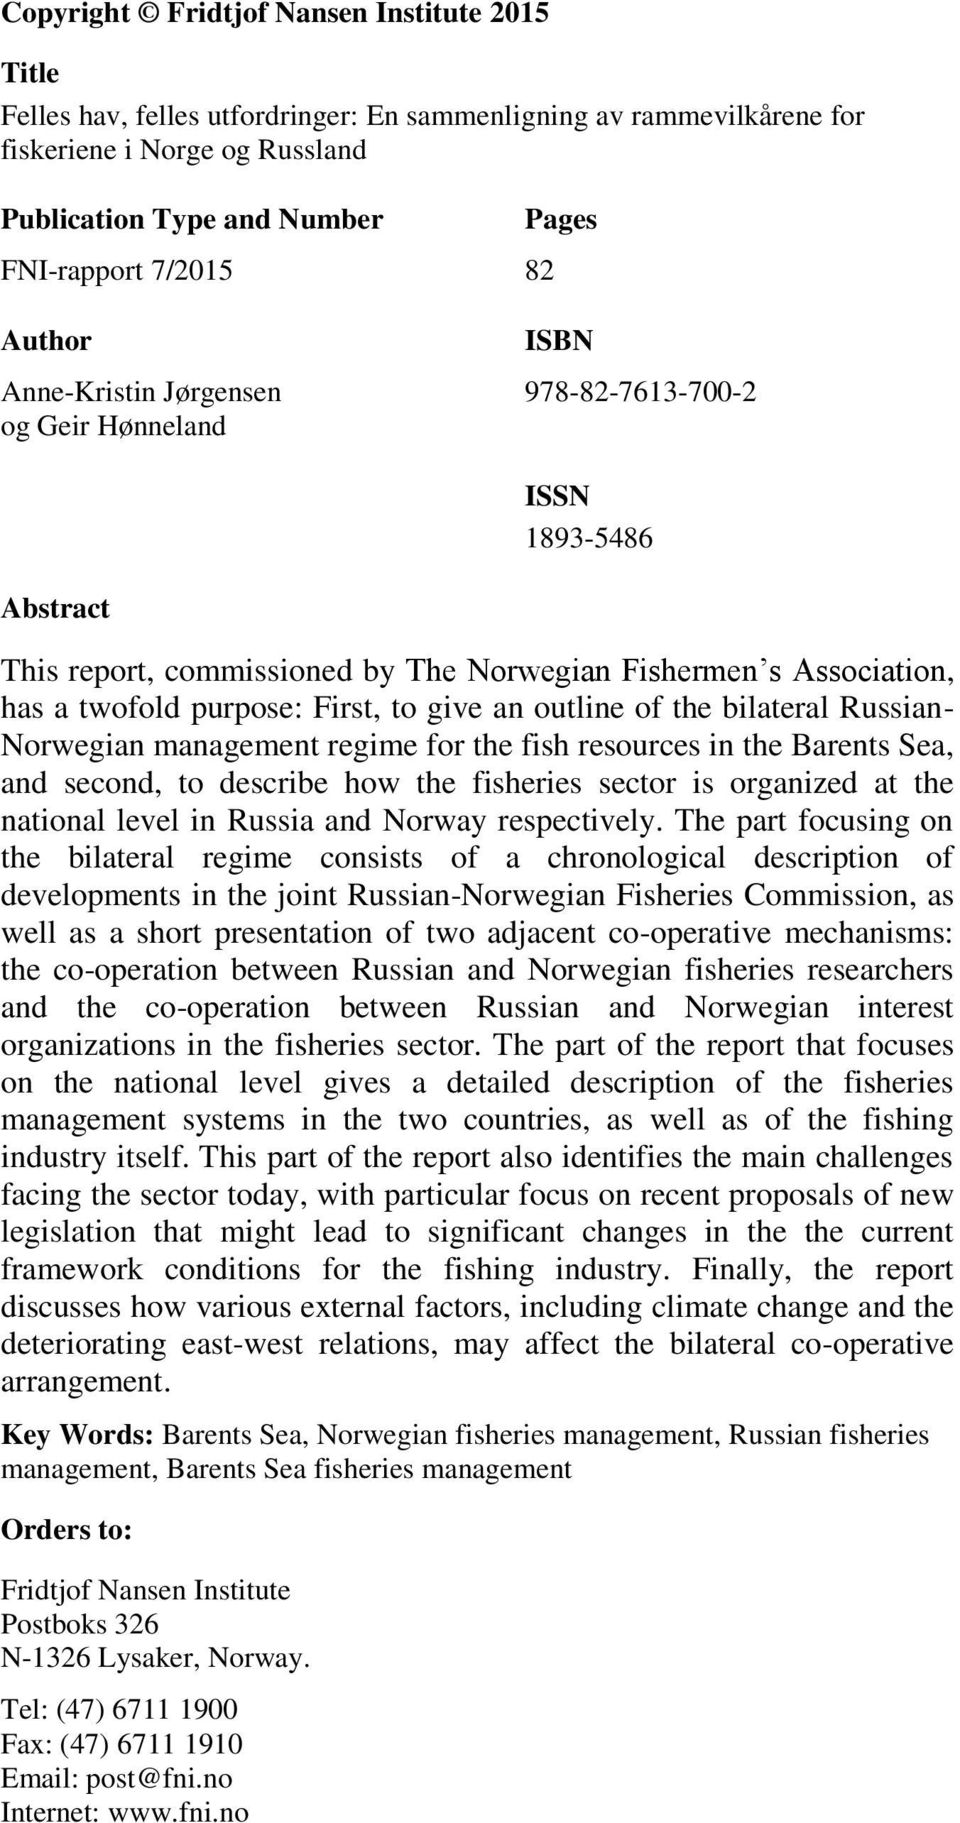 First, to give an outline of the bilateral Russian- Norwegian management regime for the fish resources in the Barents Sea, and second, to describe how the fisheries sector is organized at the